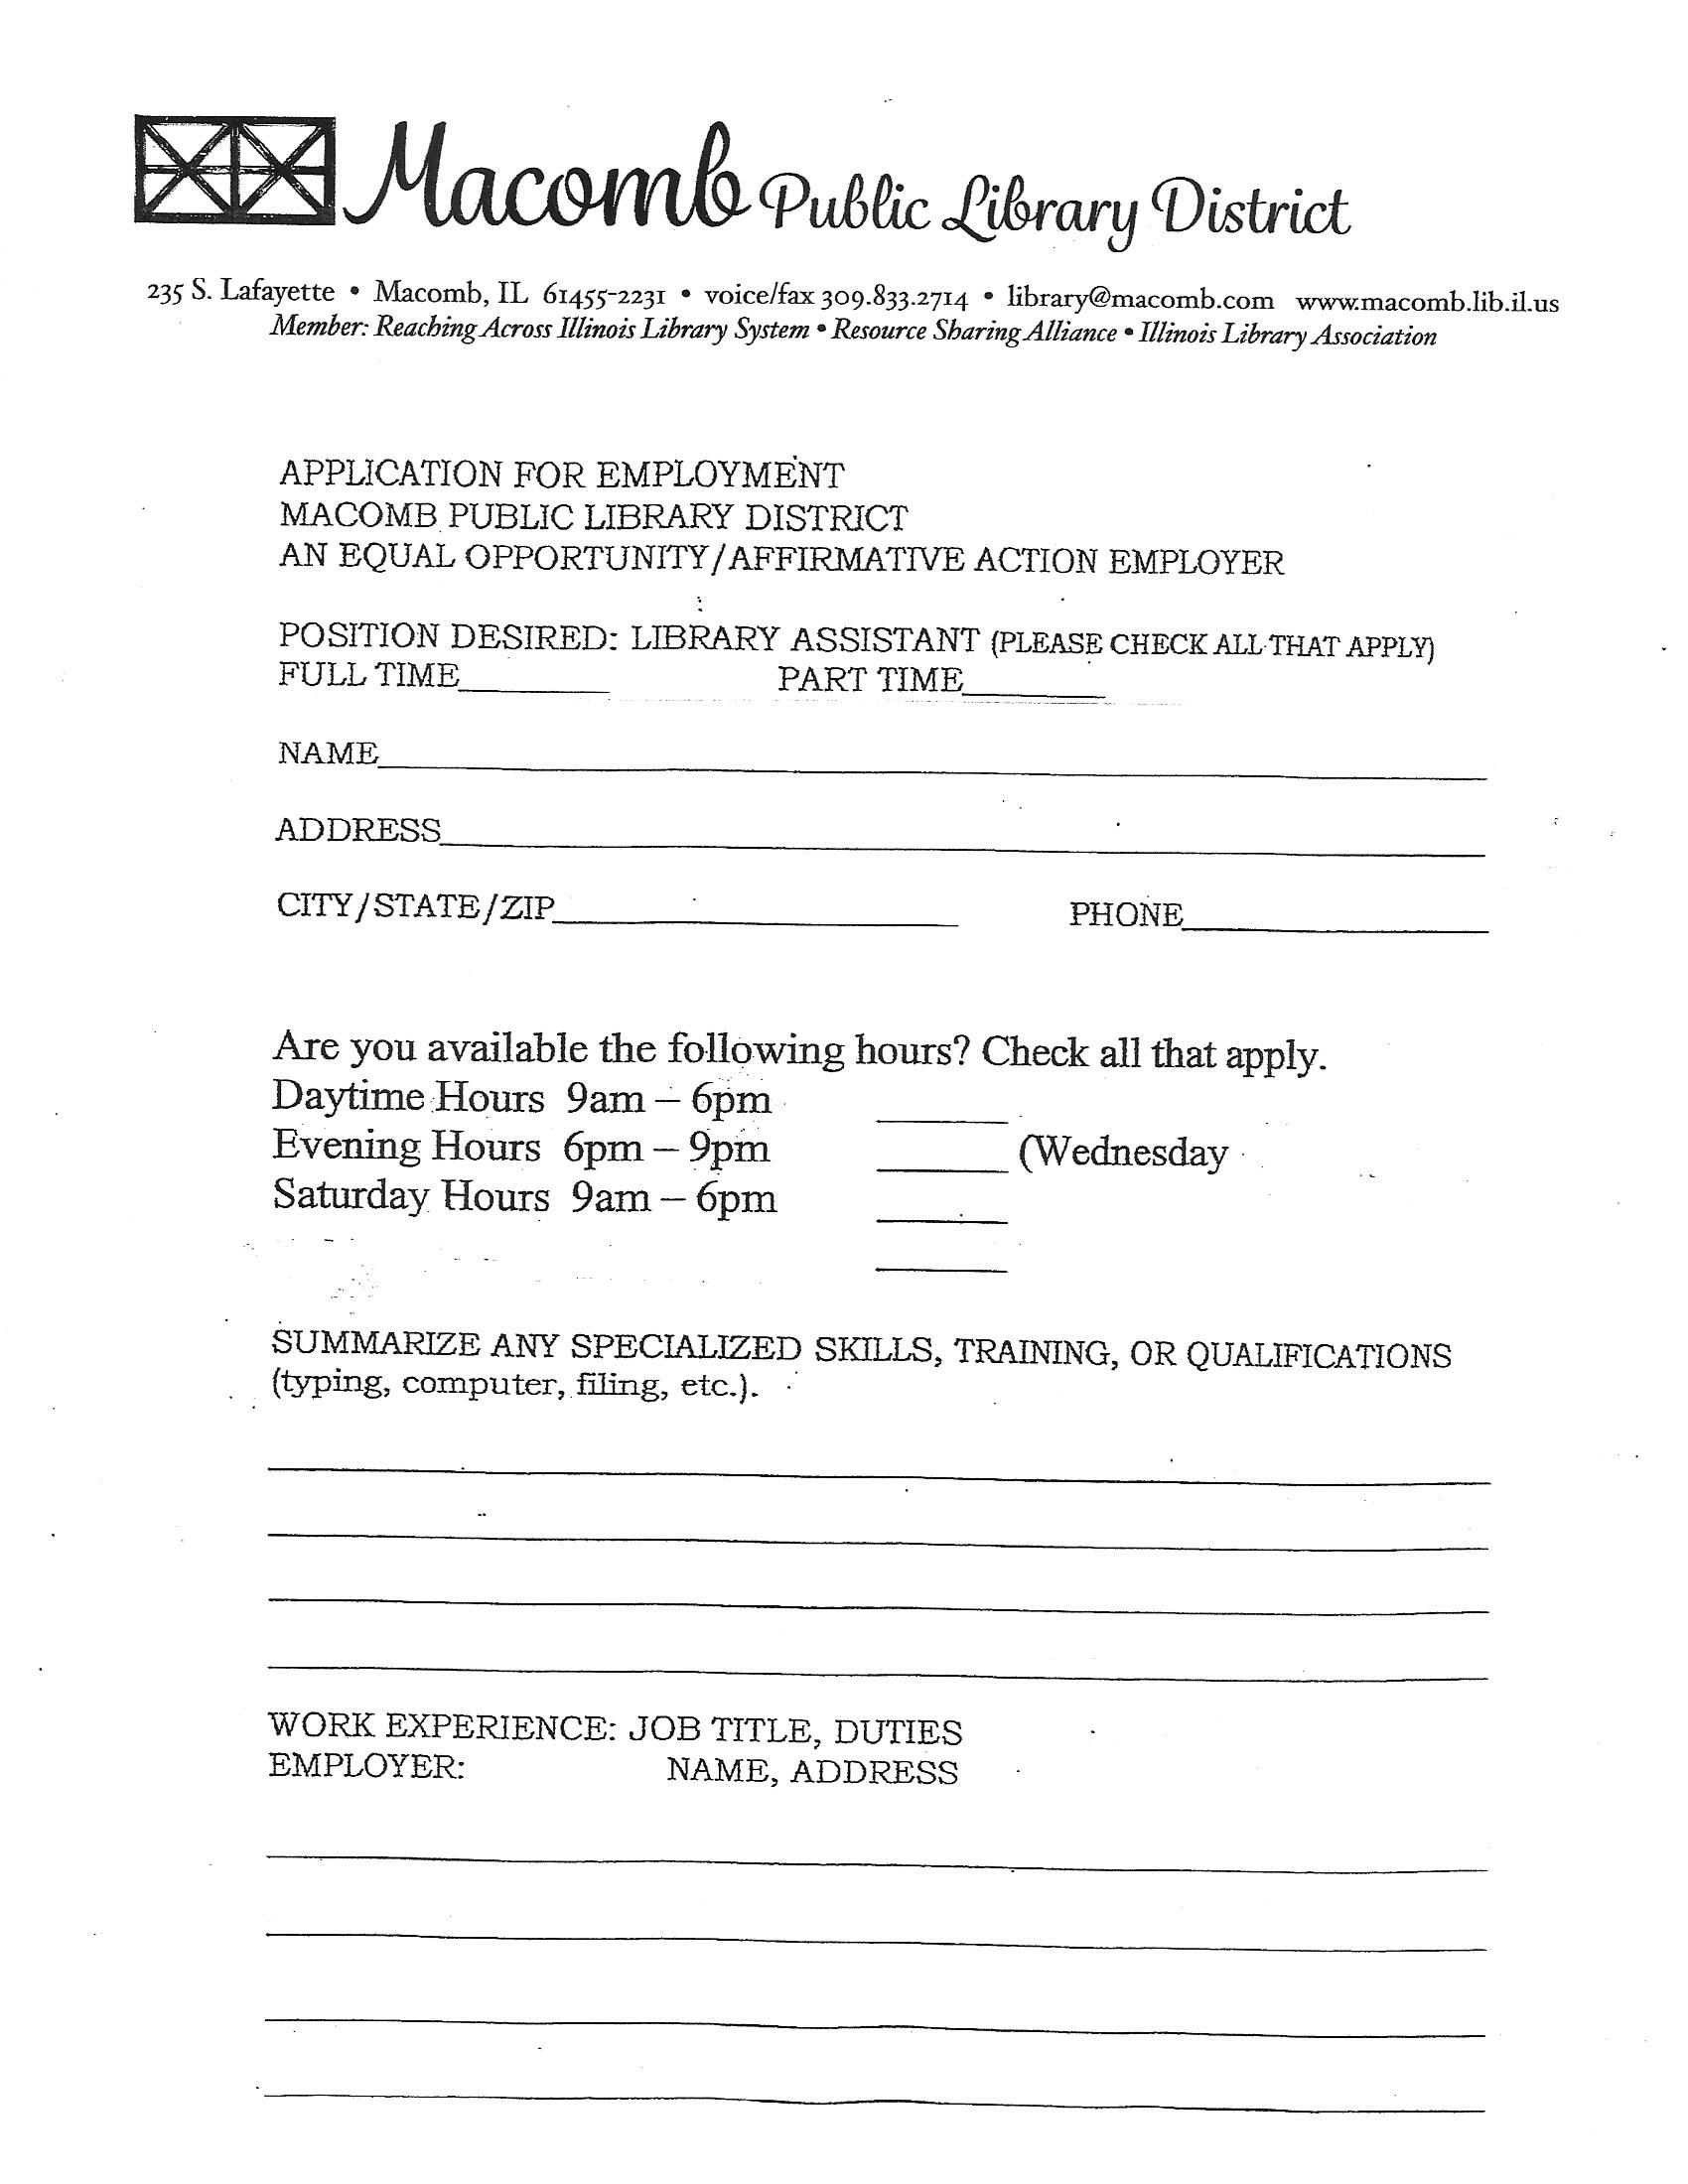 about the macomb public library macomb il you can also pick up a print copy of the application at the front desk